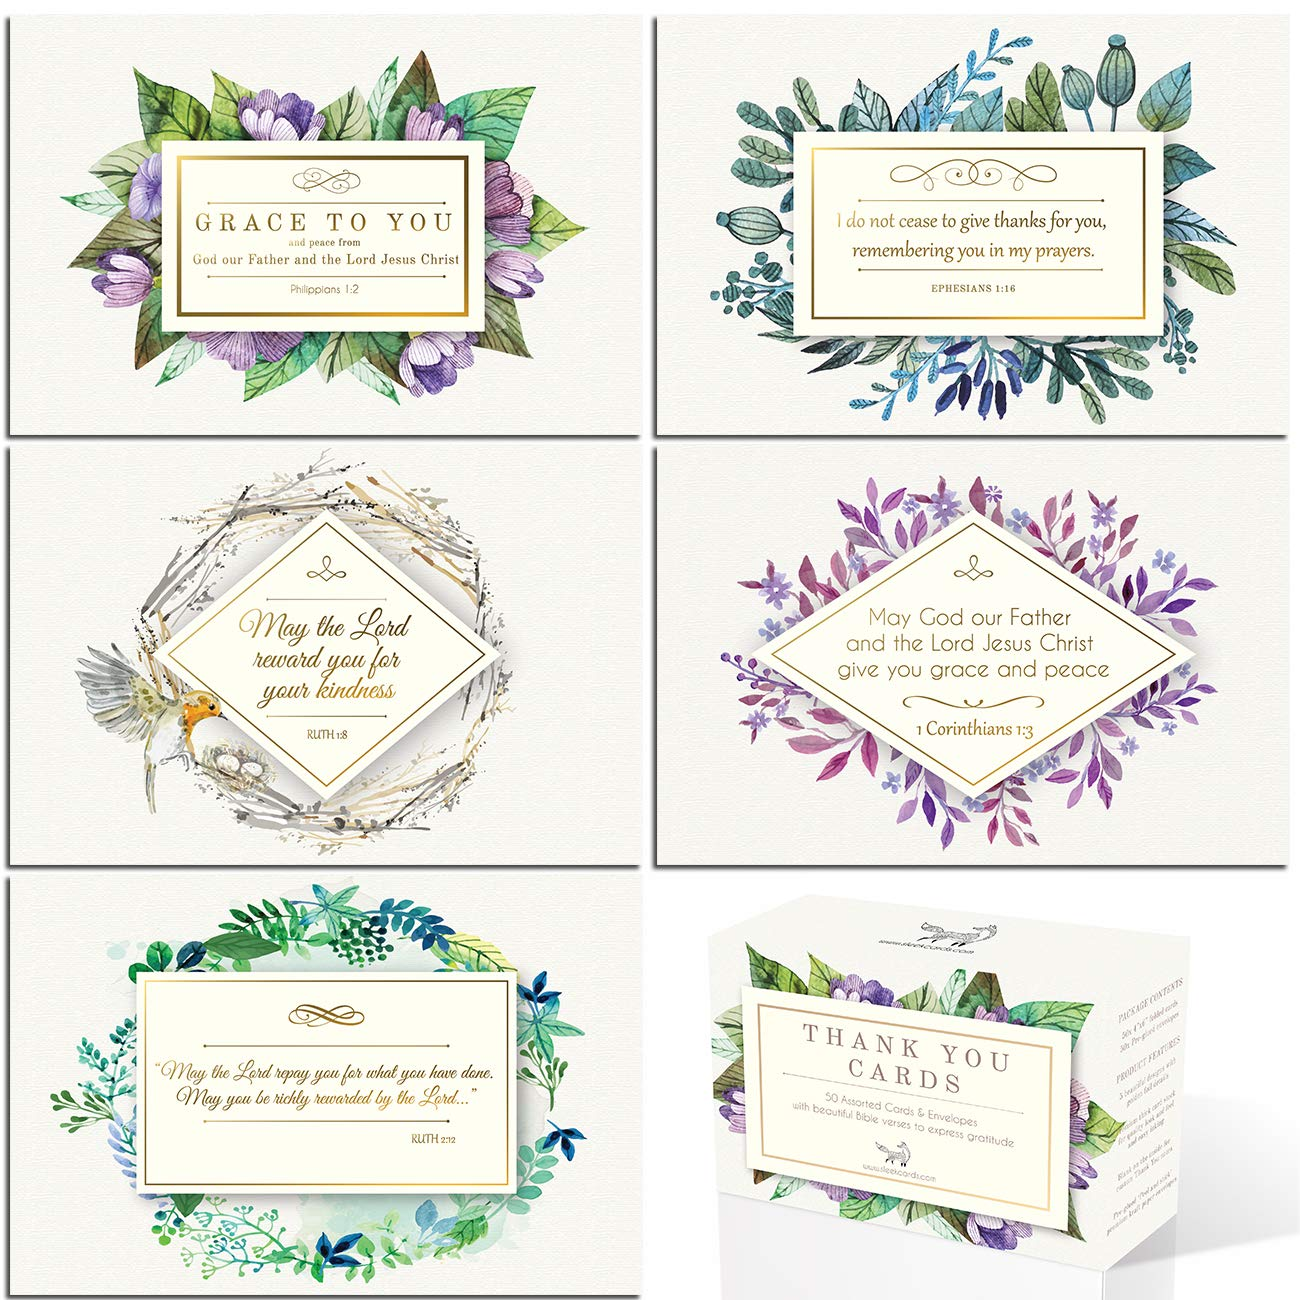 Gold foil Christian Thank You Cards with bible verses | 50 assorted 4x6 Inspirational Note Cards | Boxed Bulk ideal for Communion and Wedding | Religious Spiritual Scripture by Sleek Cards (Image #1)